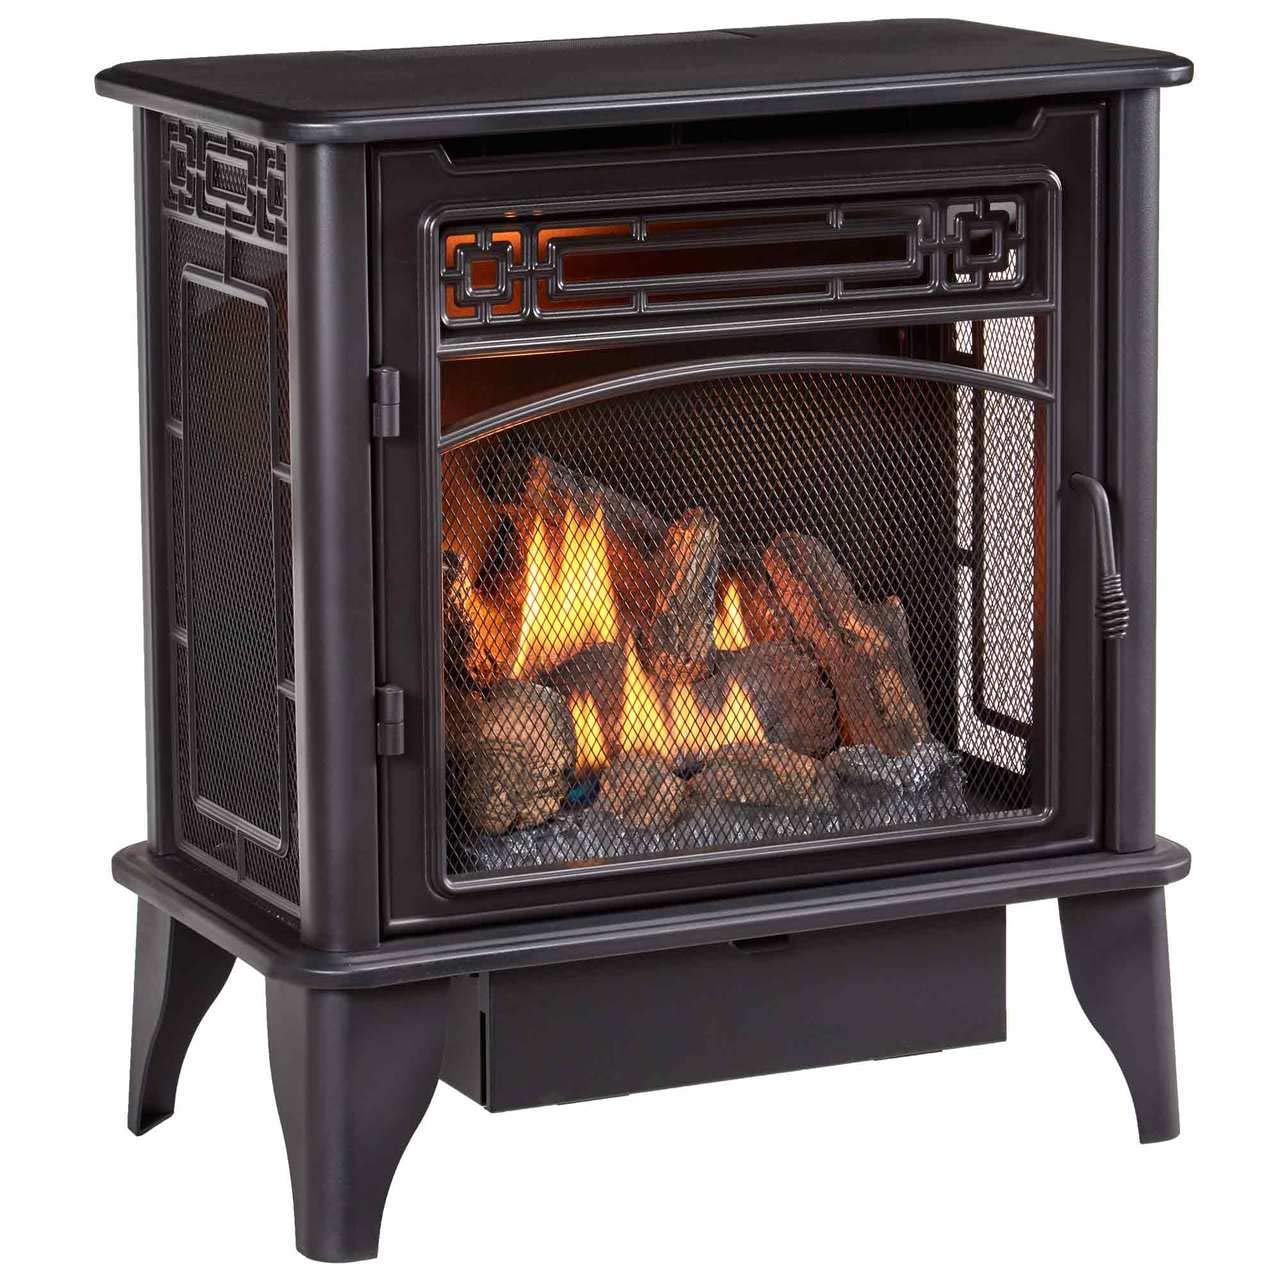 ProCom Gas Stove 3-Sided Dual Fuel Black-23,000 BTU PCNSD25TA